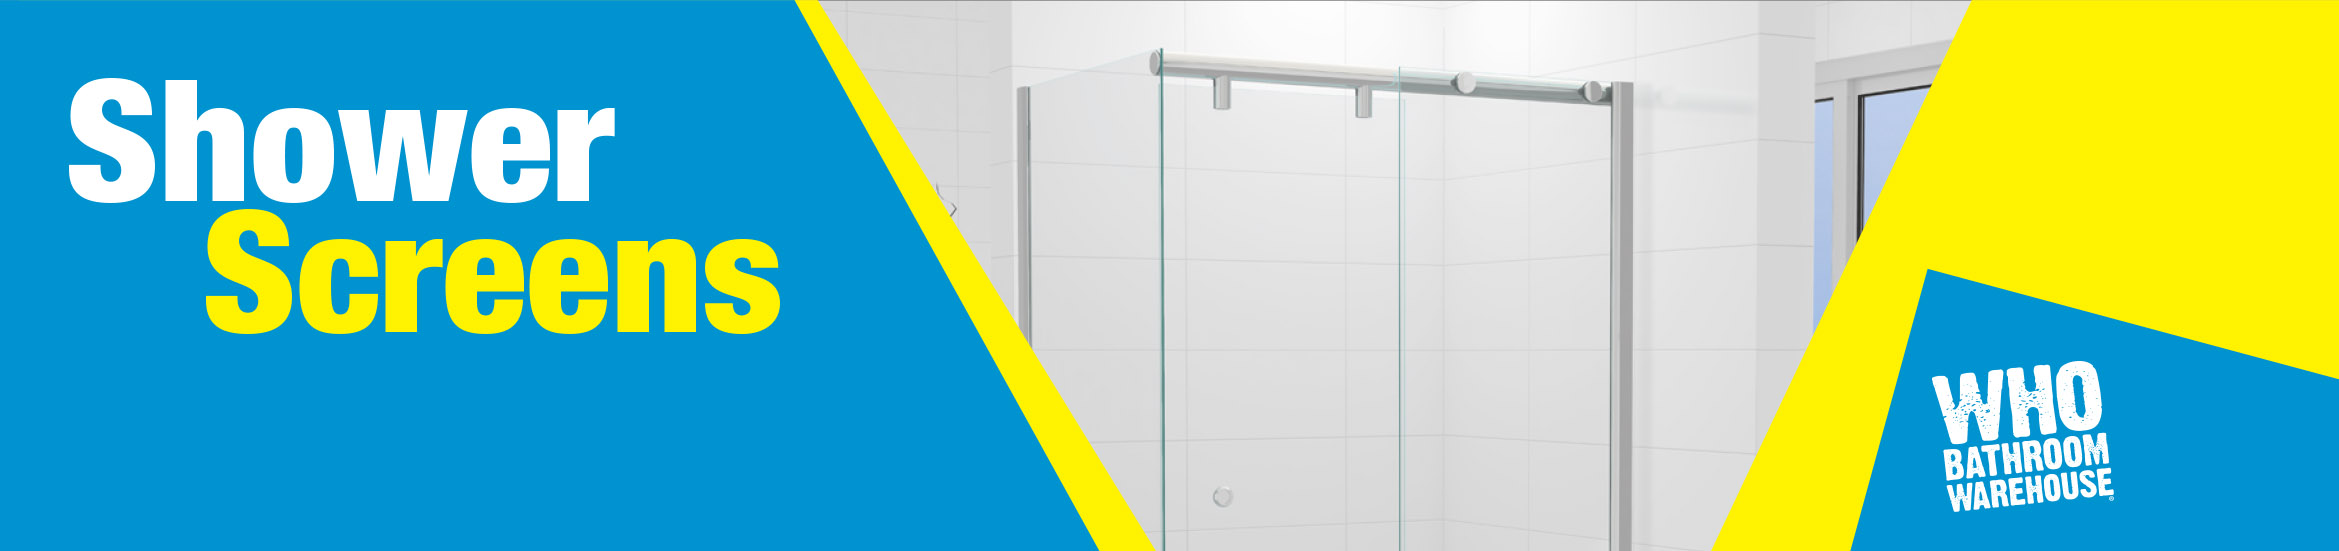 mc-image-shower-screens.jpg